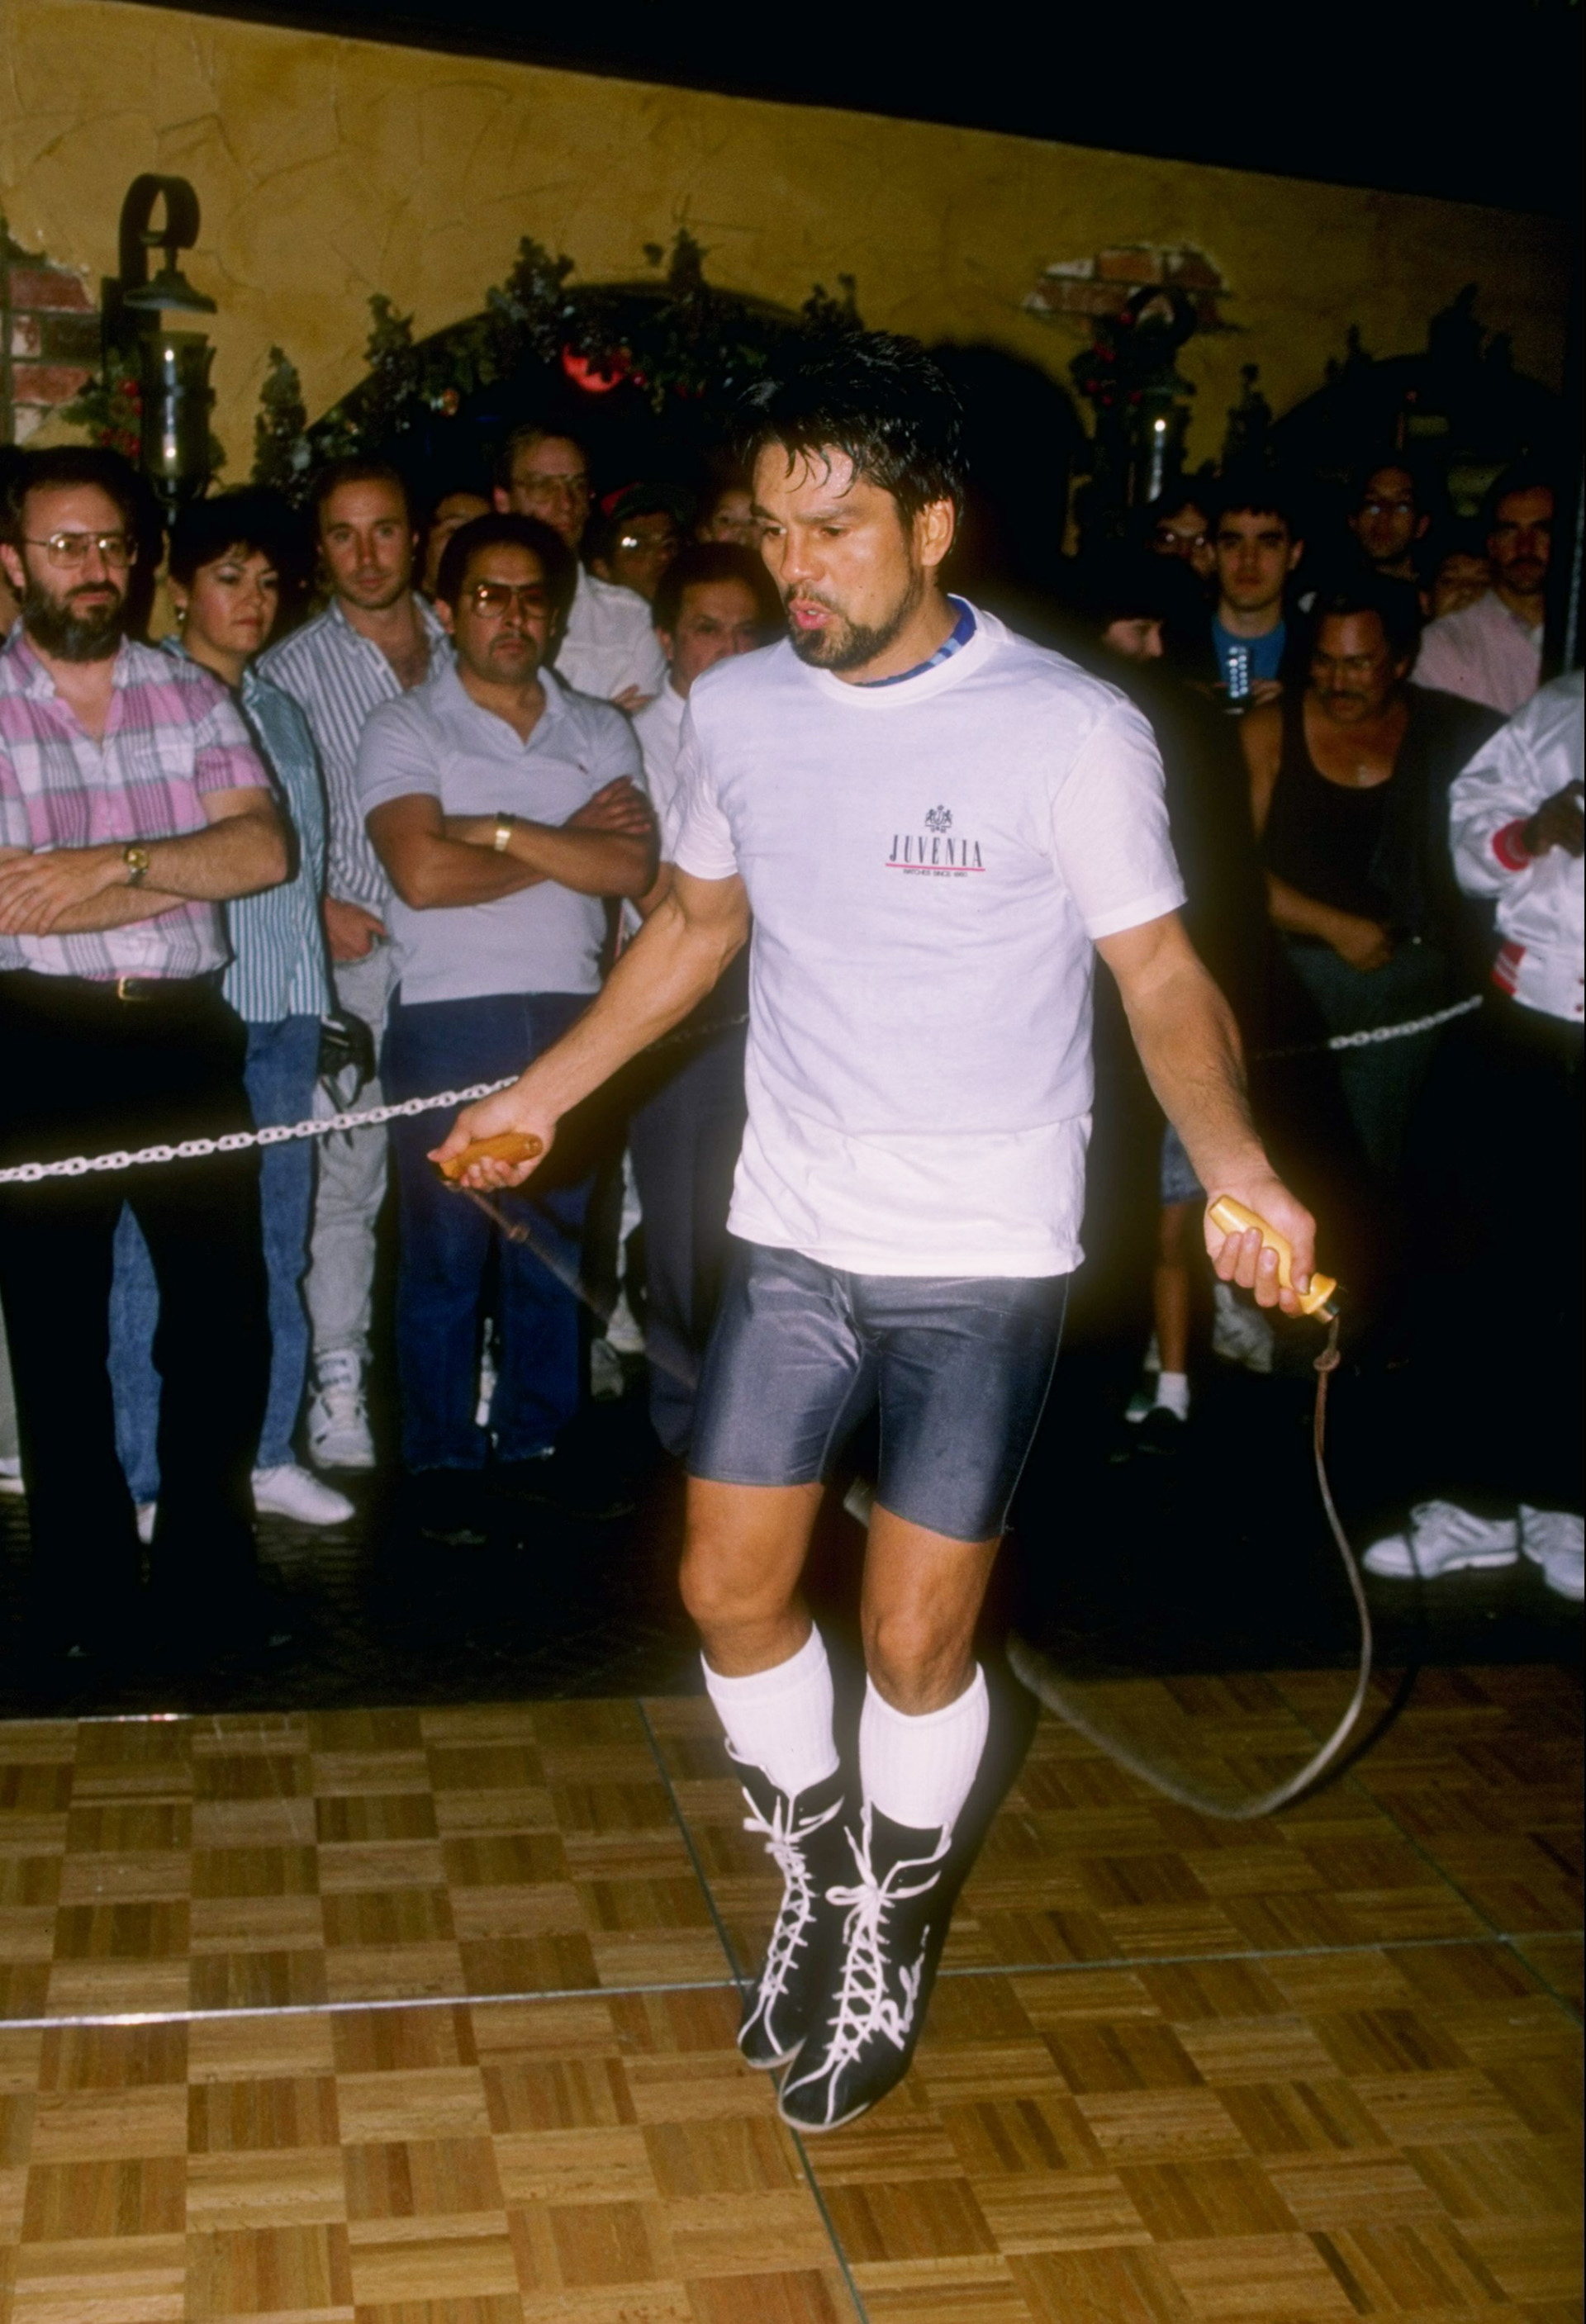 1989: Roberto Duran trains for an upcoming fight.